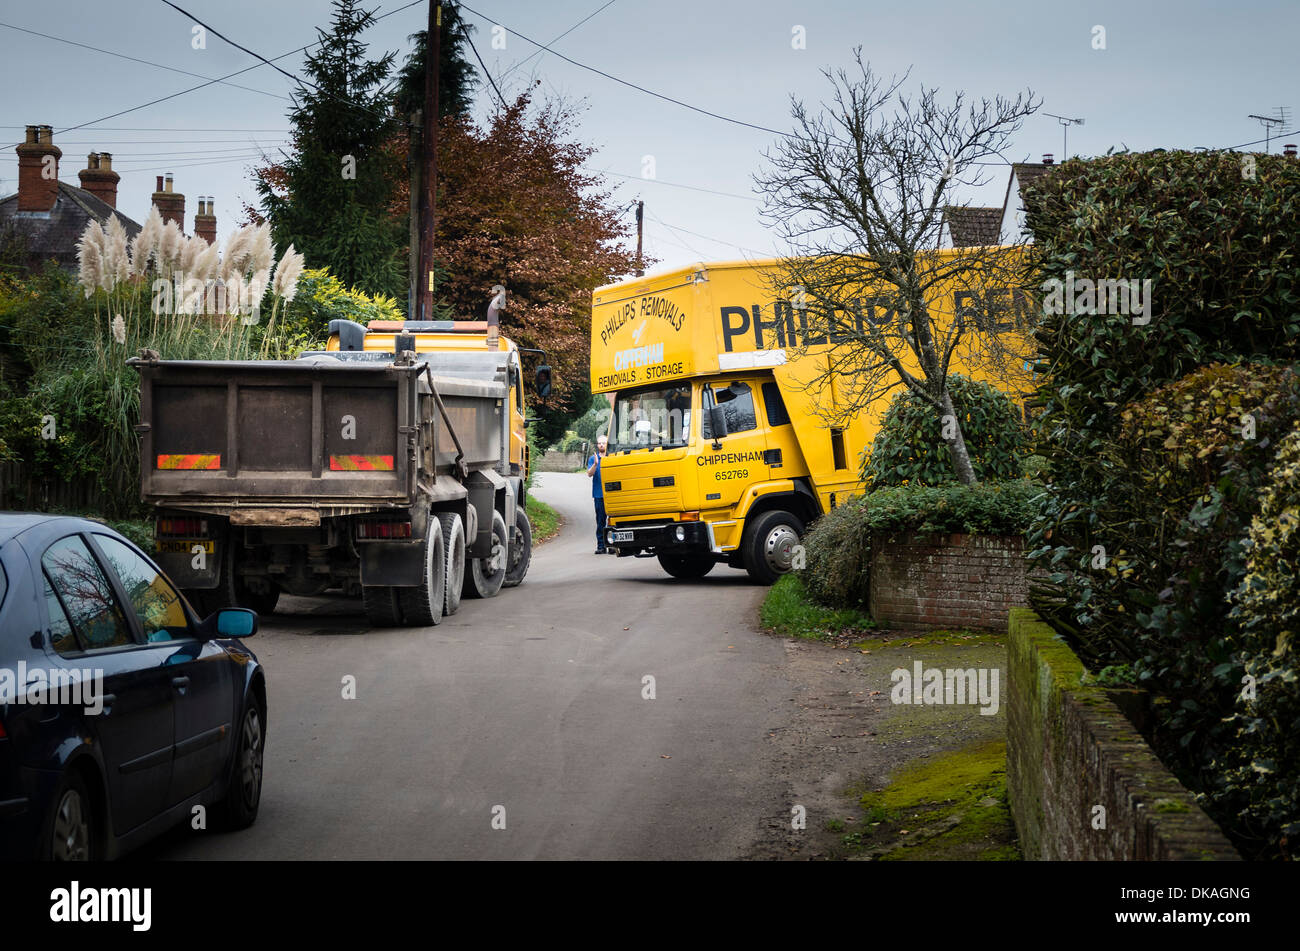 Driver assisting traffic flow during temporary rural congestion caused by a removal van working in small village lane in UK - Stock Image